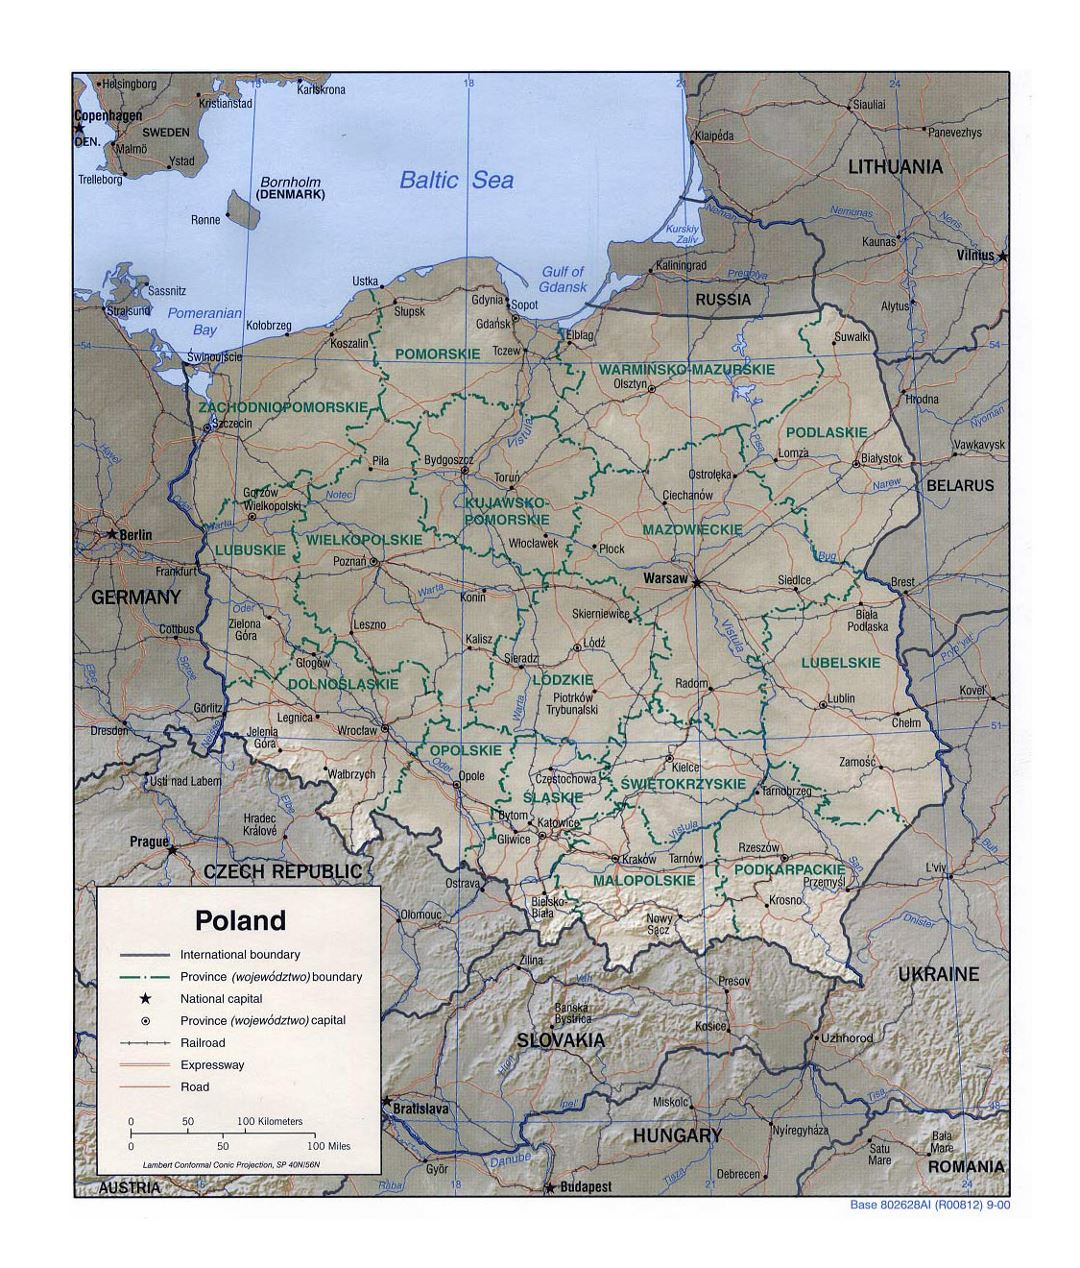 Detailed political and administrative map of Poland with relief, roads, railroads and major cities - 2000